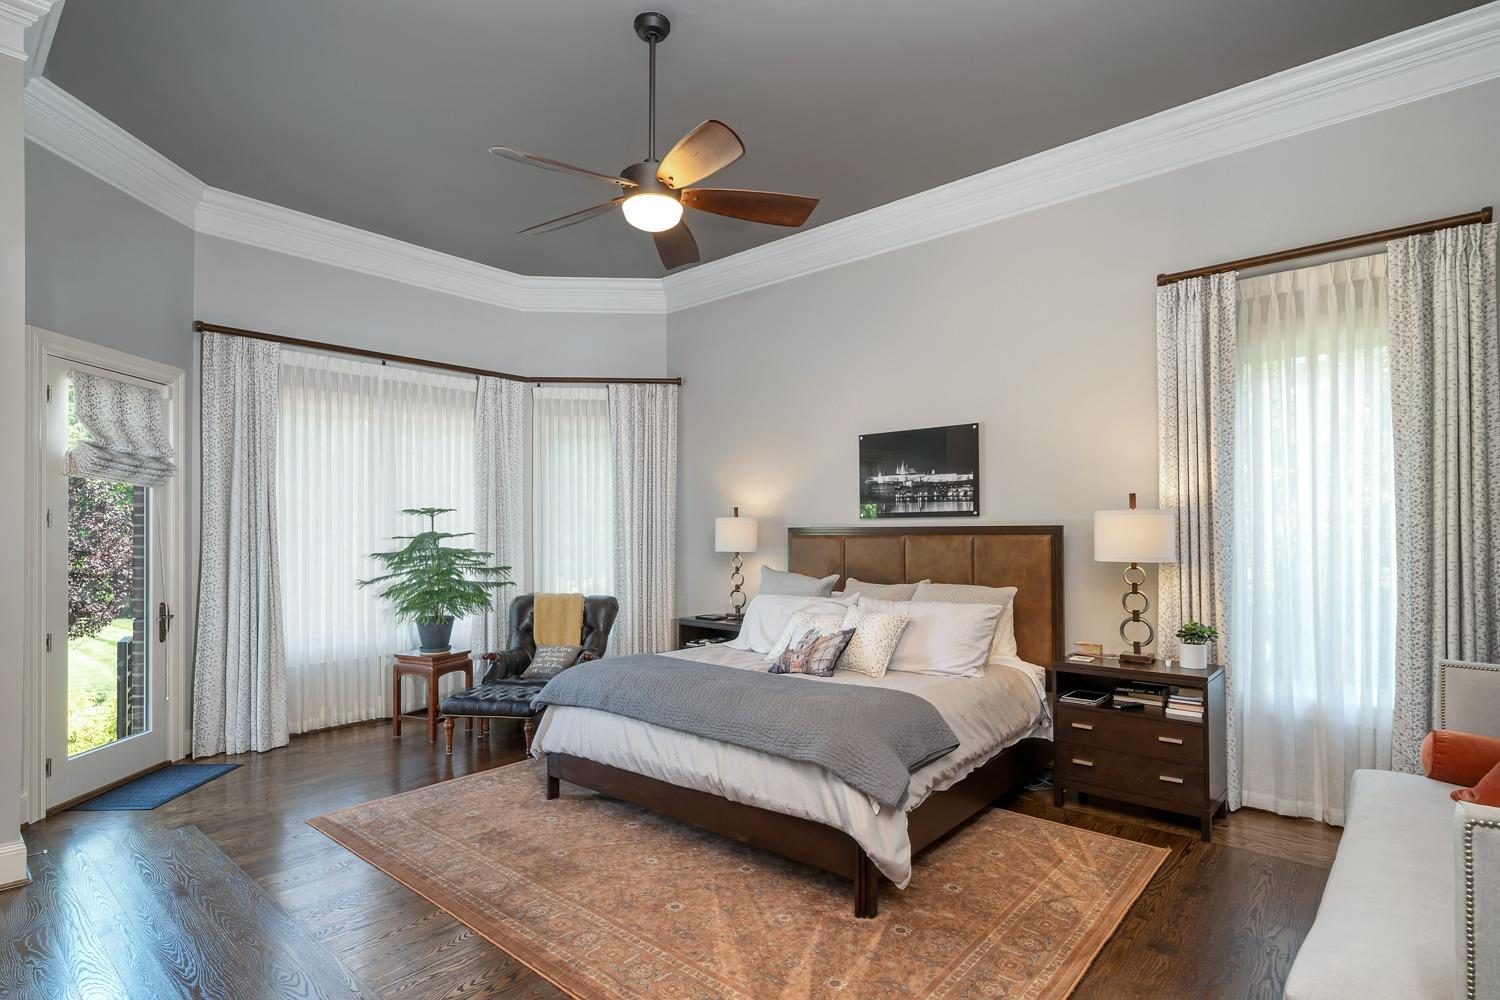 Master suite features 12' ceilings, hardwood floors, custom draperies, and SONOS powered sound system speakers.